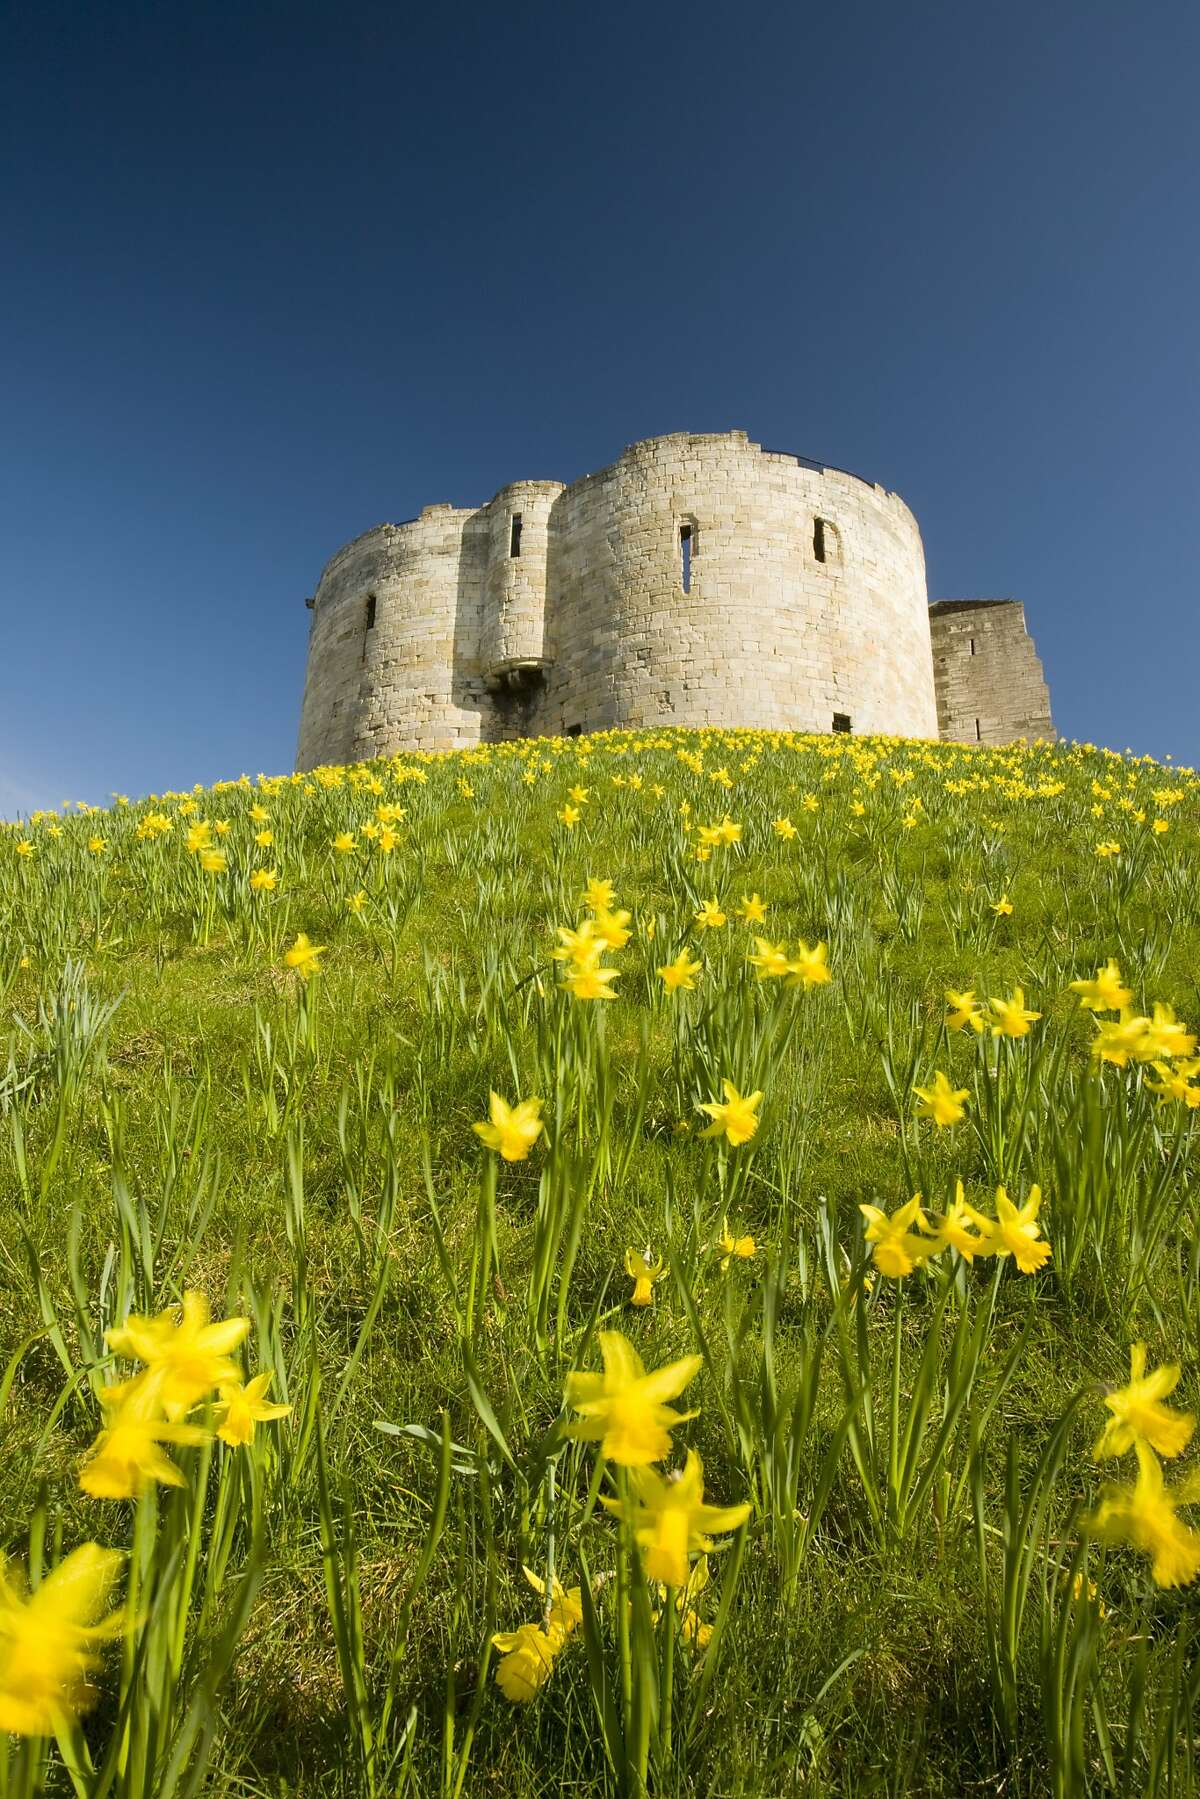 Looking up a hill carpeted in daffodils towards York Castle, also known as Clifford's Tower, in North Yorkshire.